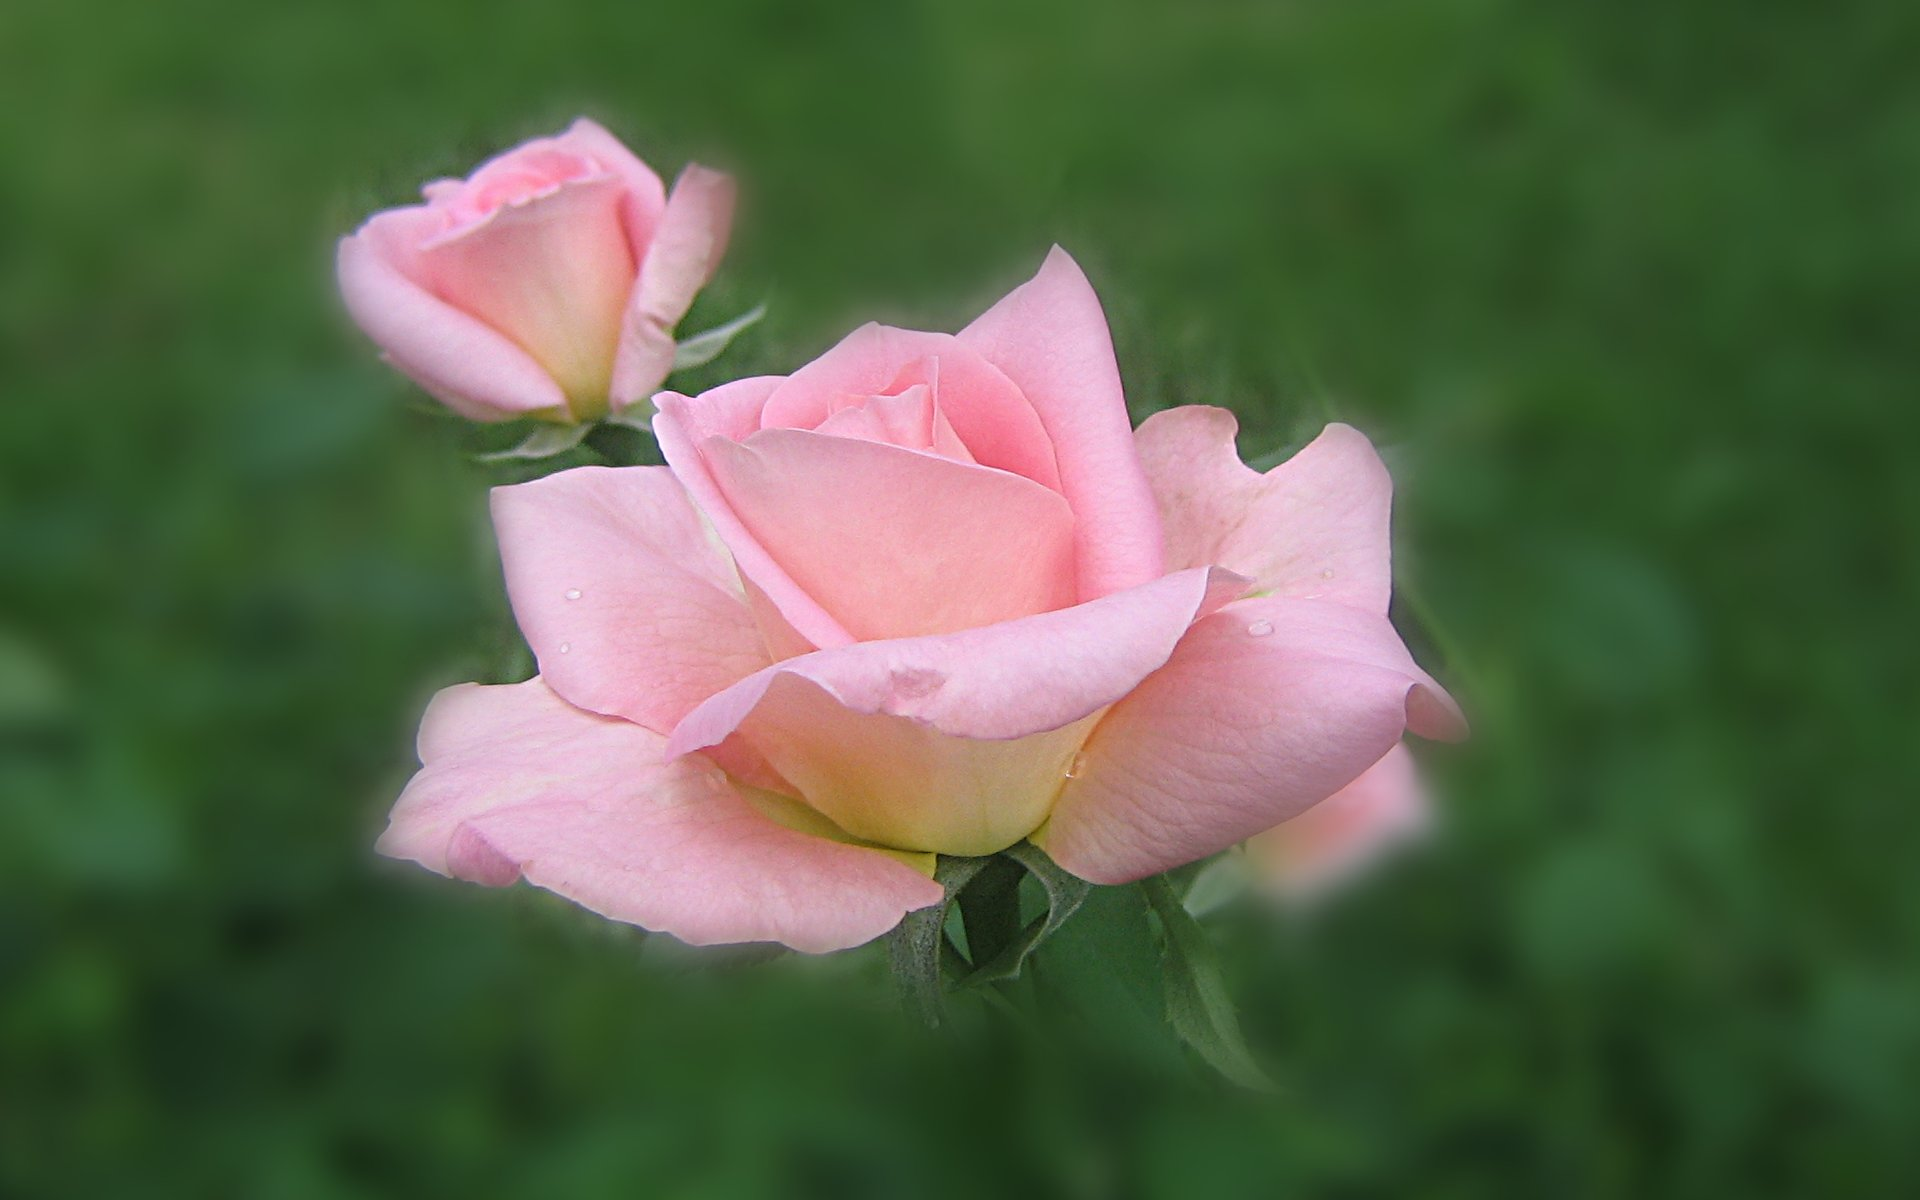 wallpapers widescreen pink roses - photo #11